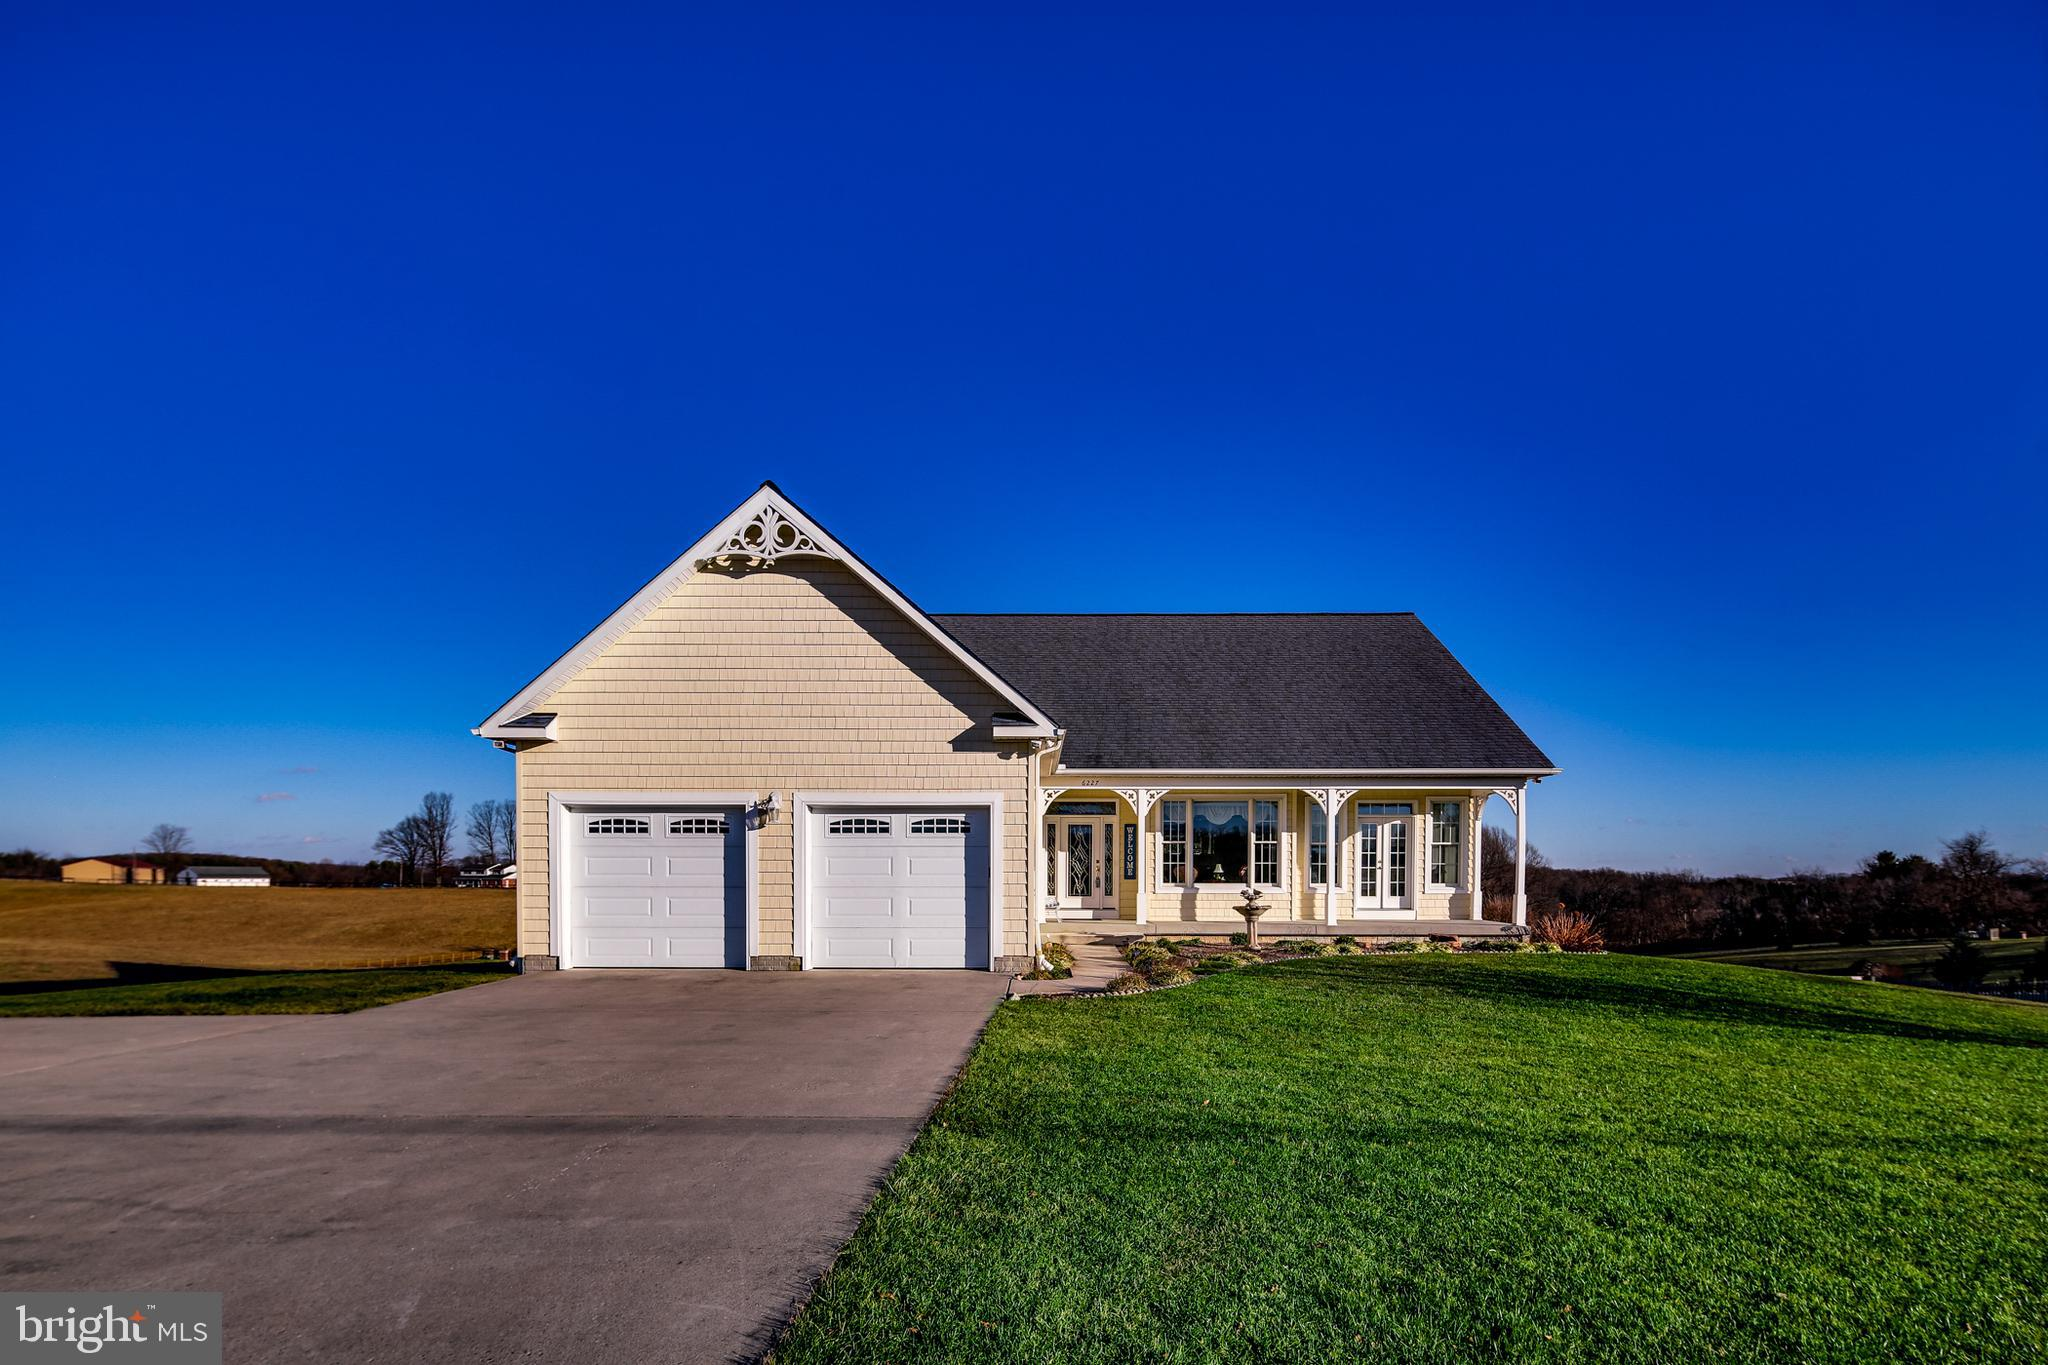 SPRAWLING RANCHER NOW AVAILABLE IN SOUGHT AFTER CARROLL COUNTY. THIS OUTSTANDING CUSTOM HOME BOASTS